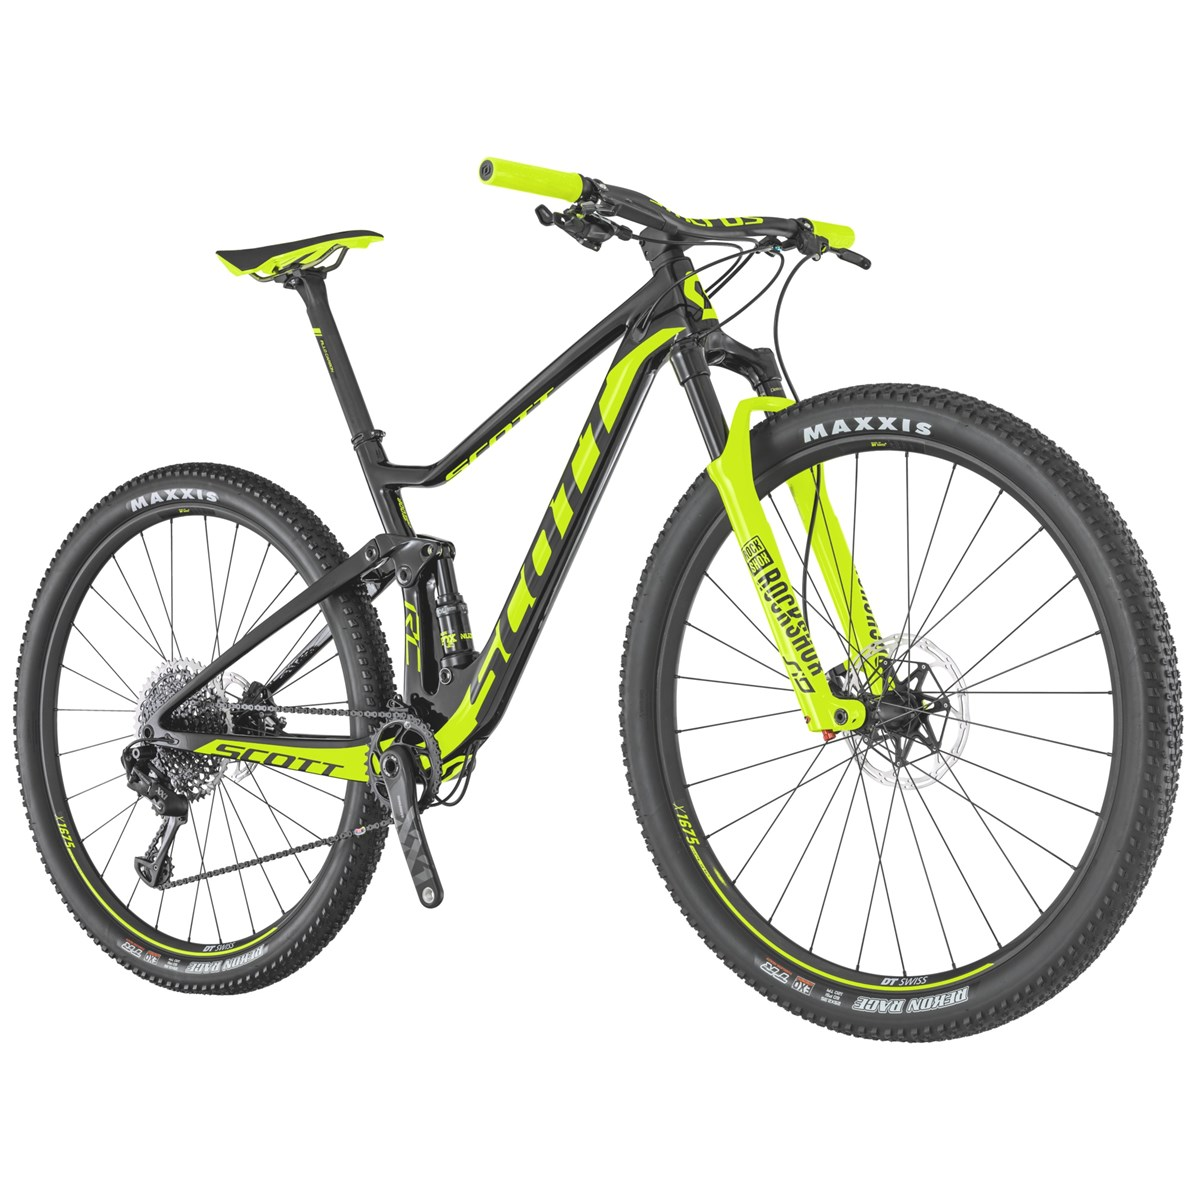 692bfa1dcee 2019 Scott Spark RC 900 World Cup Full Suspension Mountain Bike ...